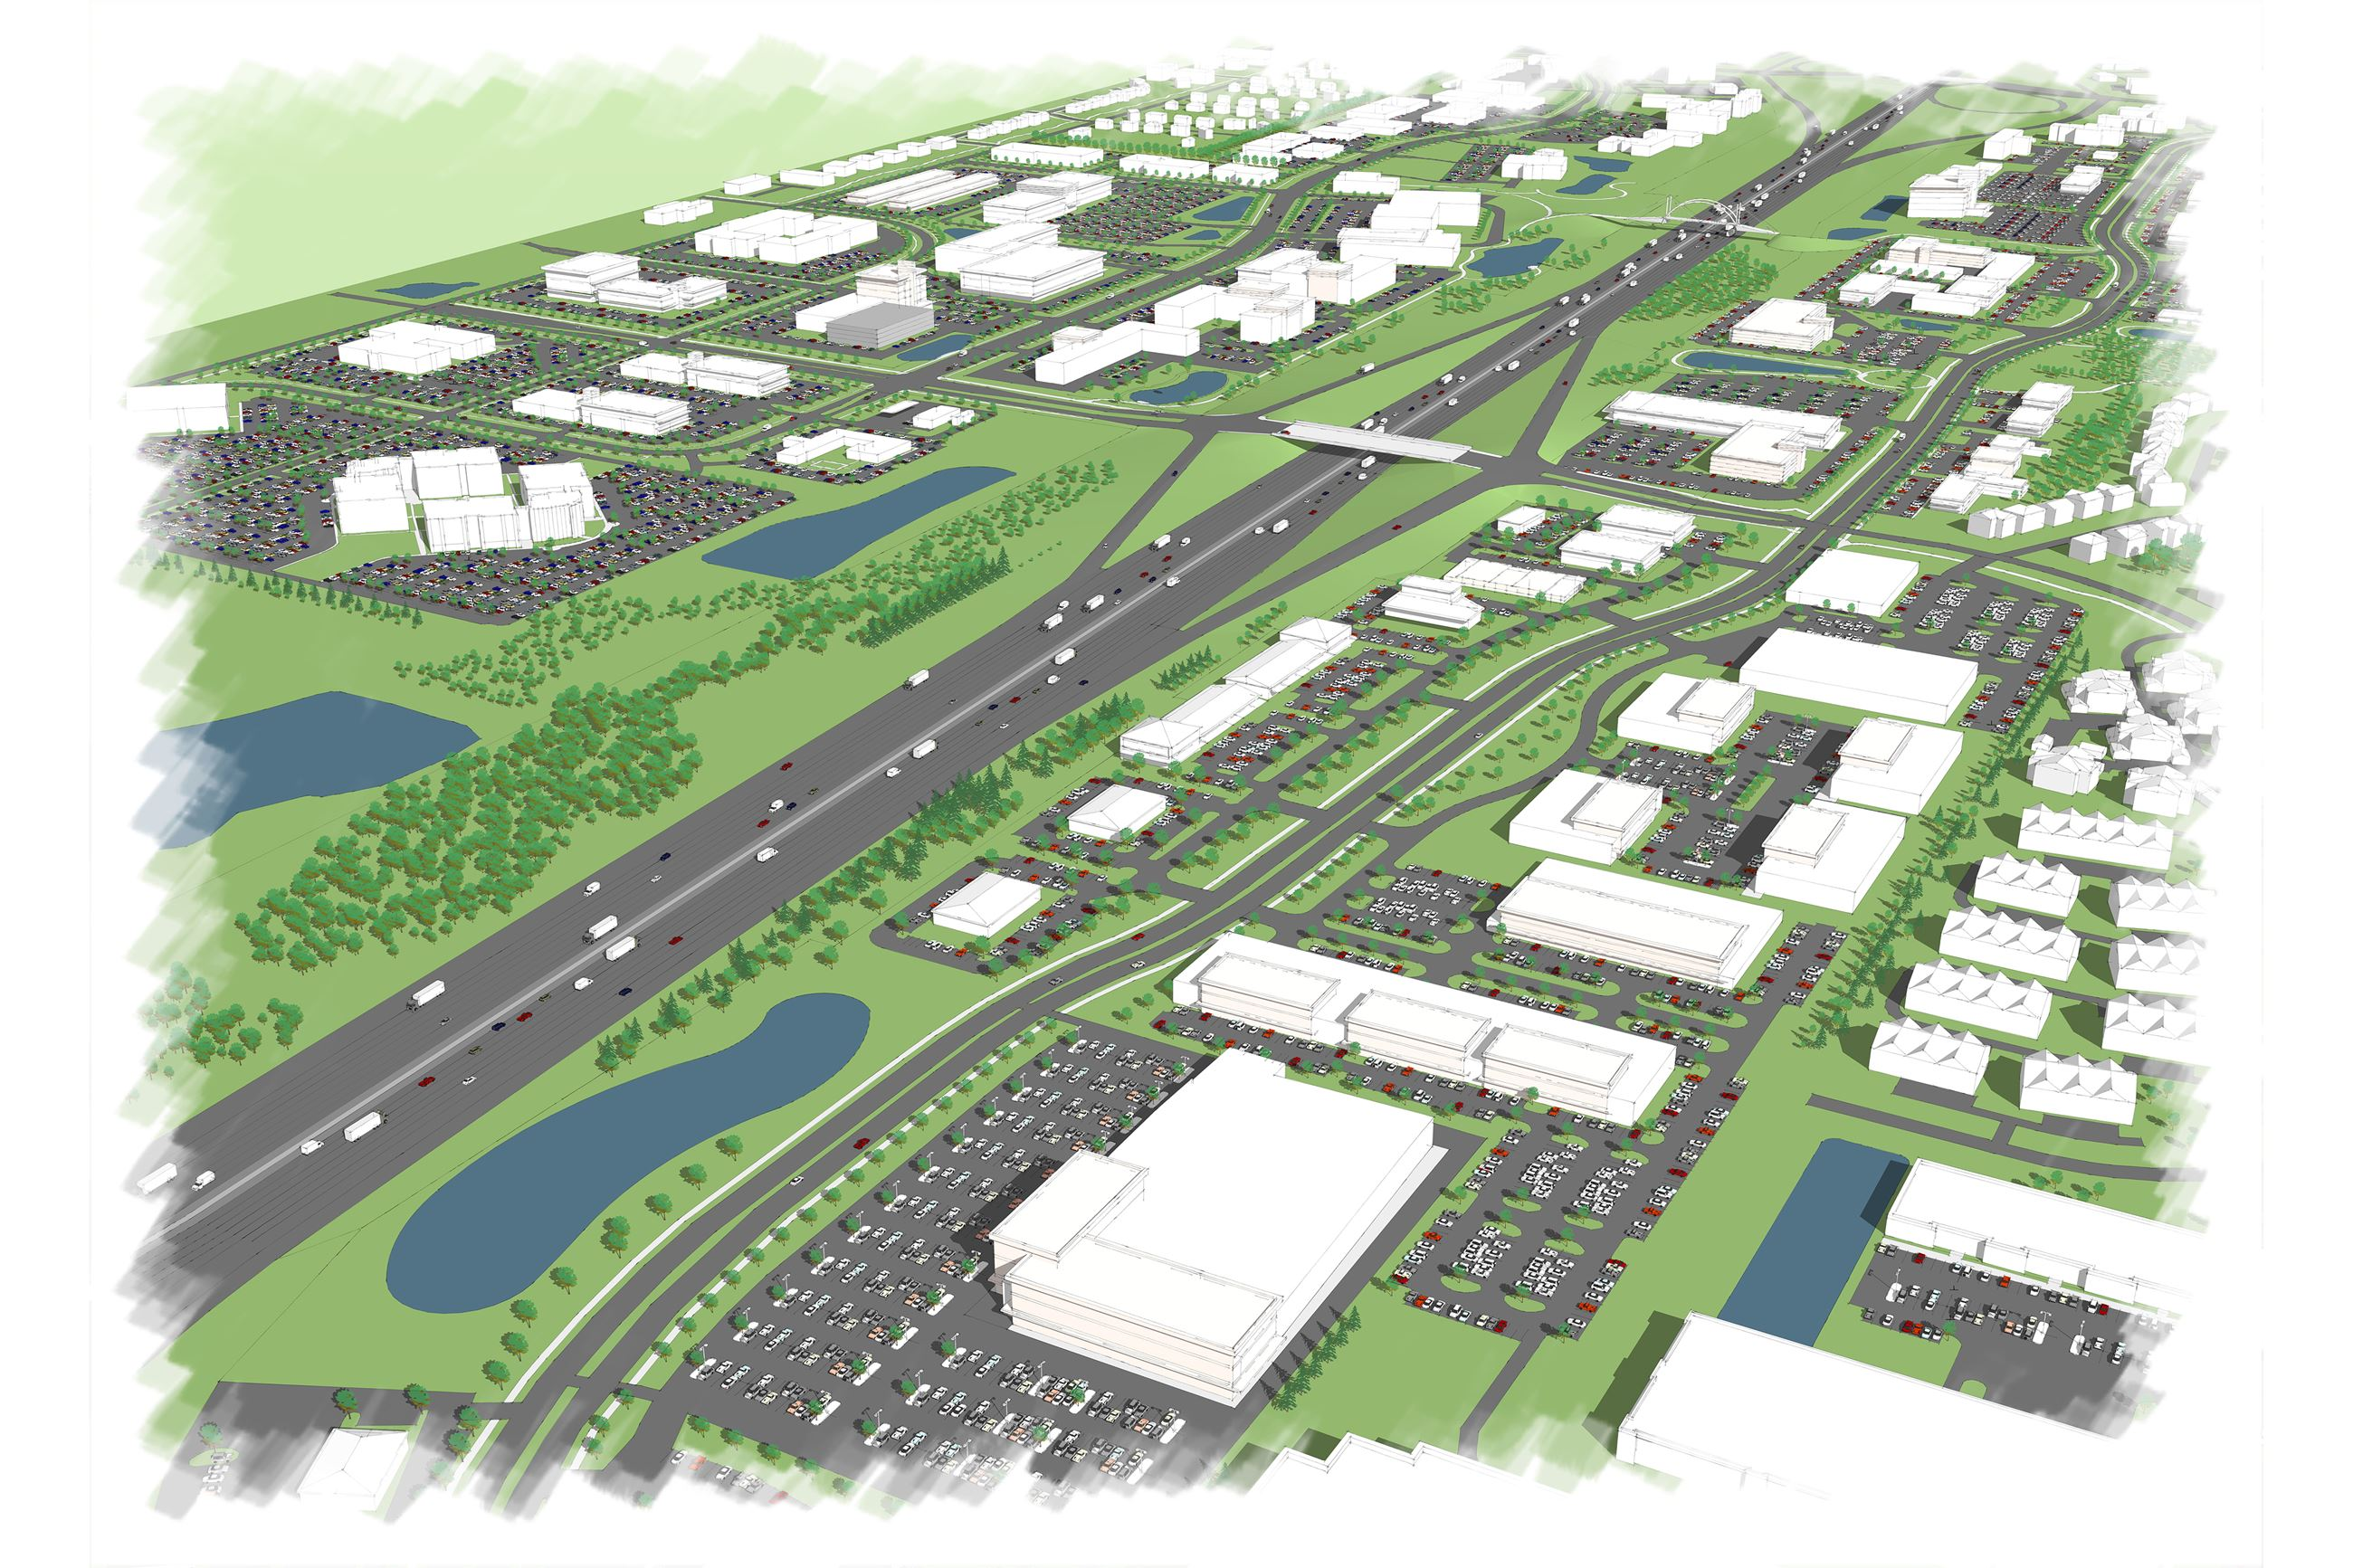 Renderings of the Urban Loop in Urbandale, IA